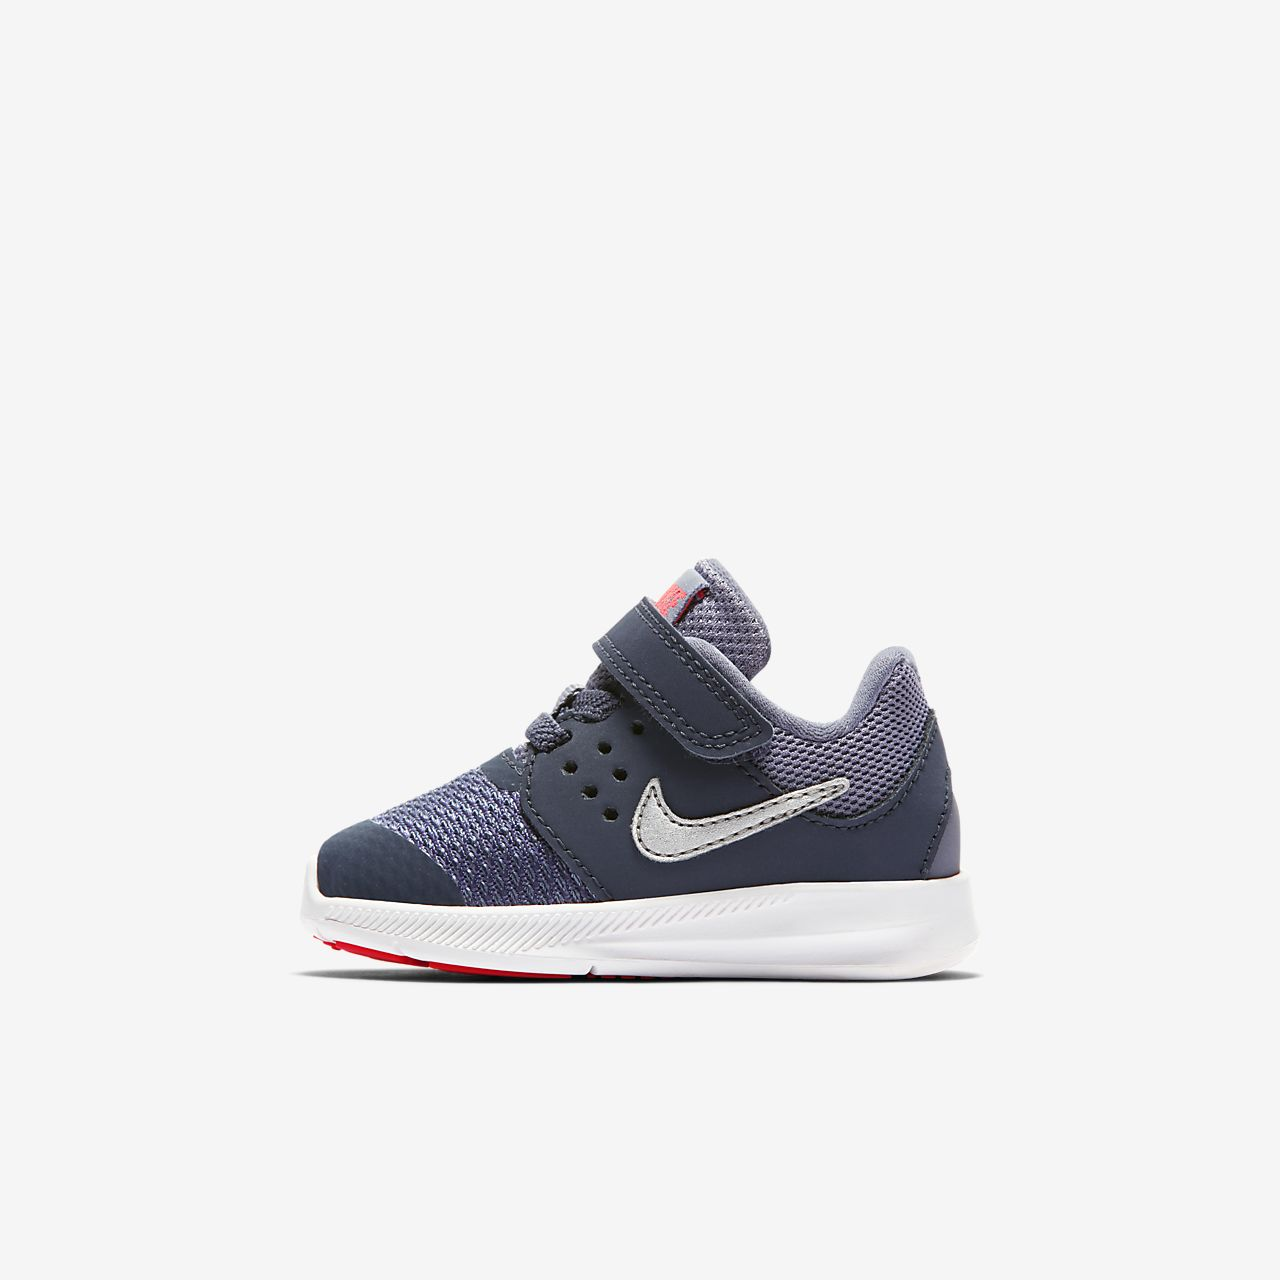 Nike Downshifter 7 Baby & Toddler Shoe